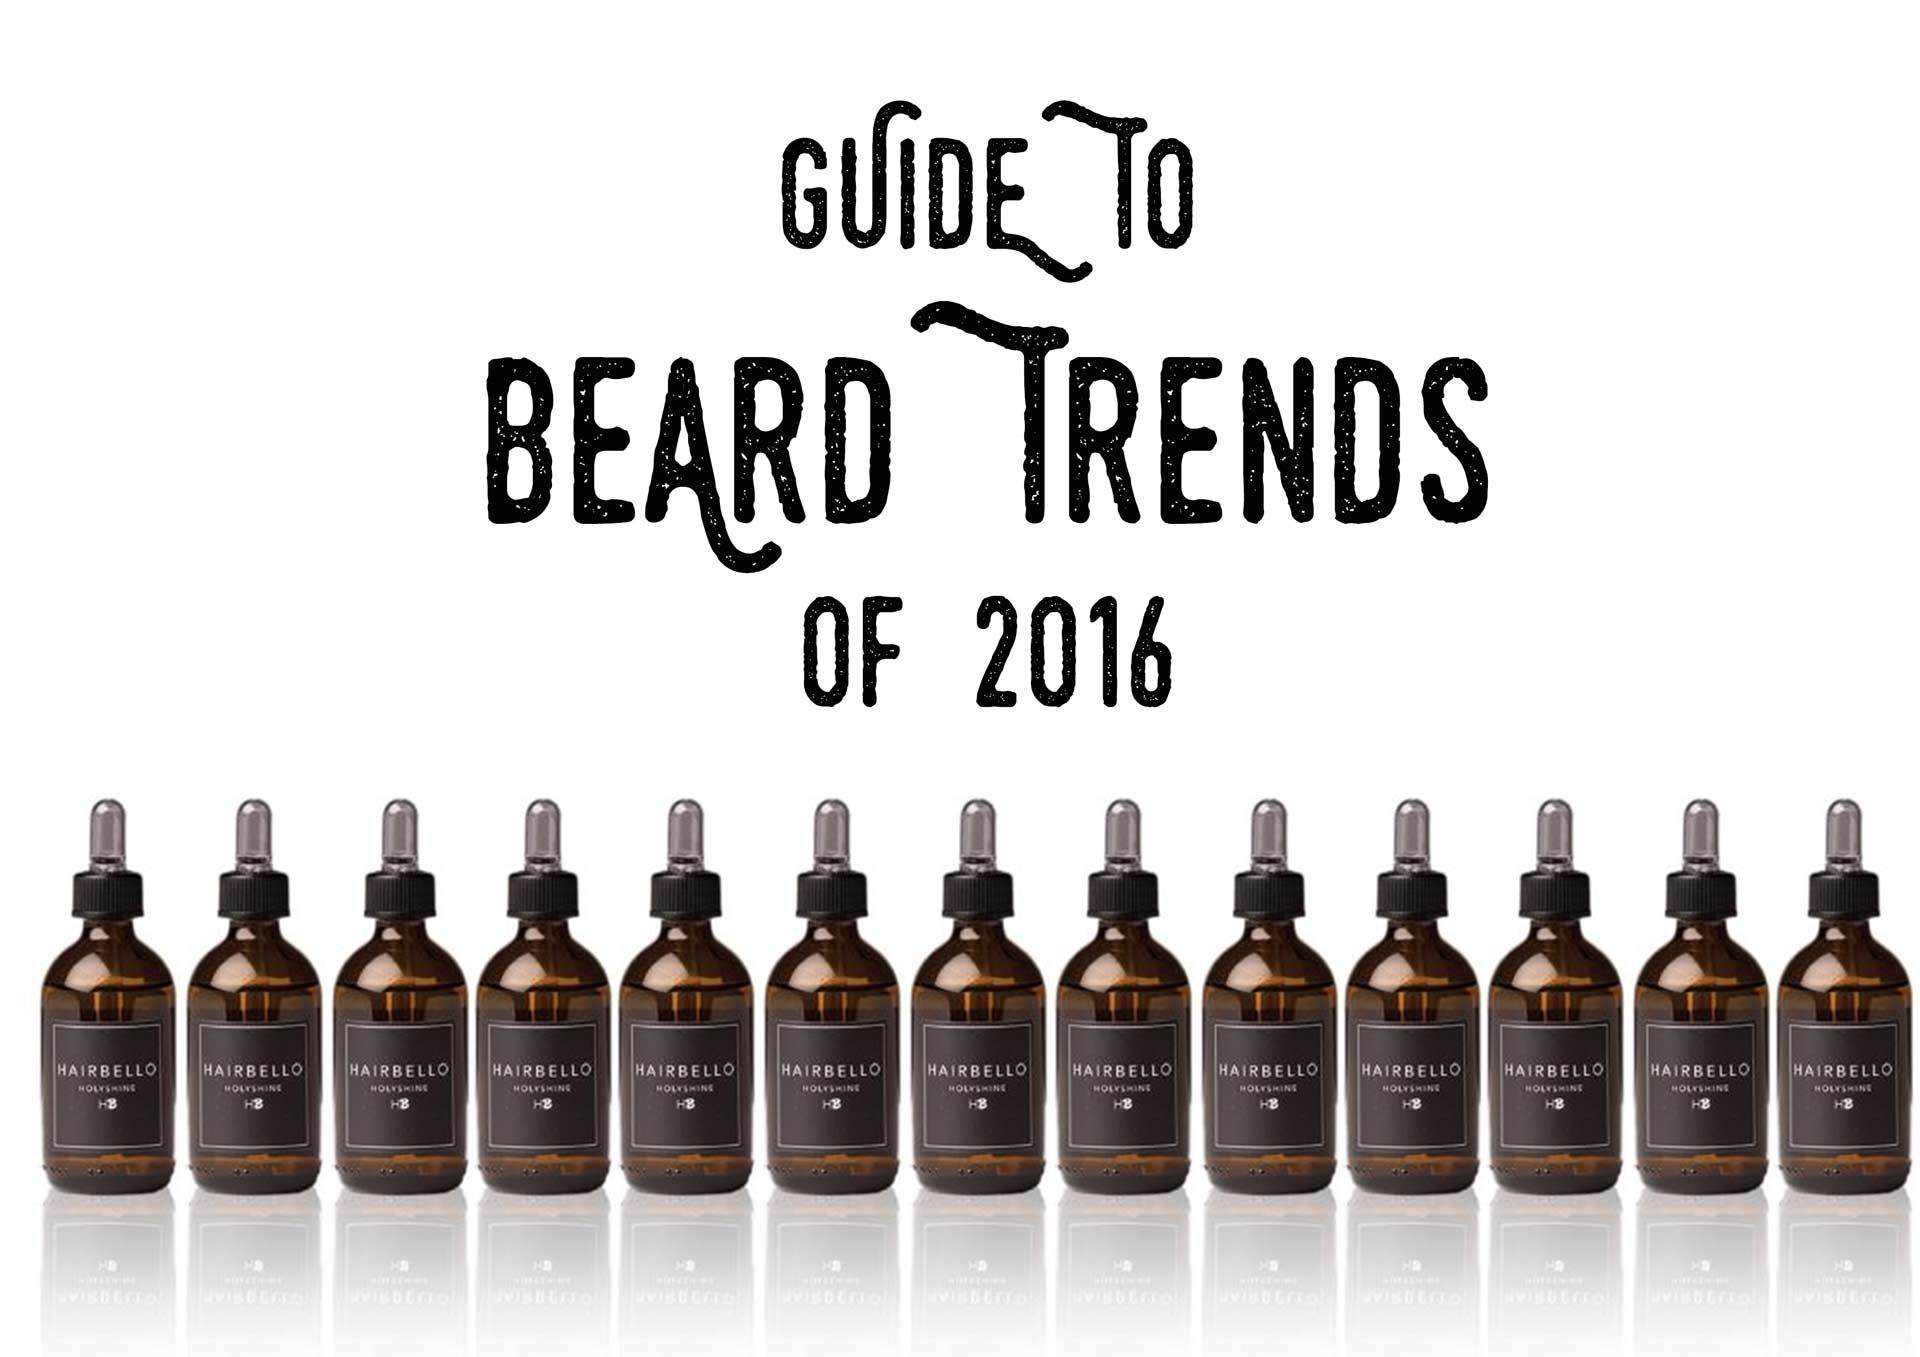 Hairbello | GUIDE TO BEARD TRENDS OF 2016